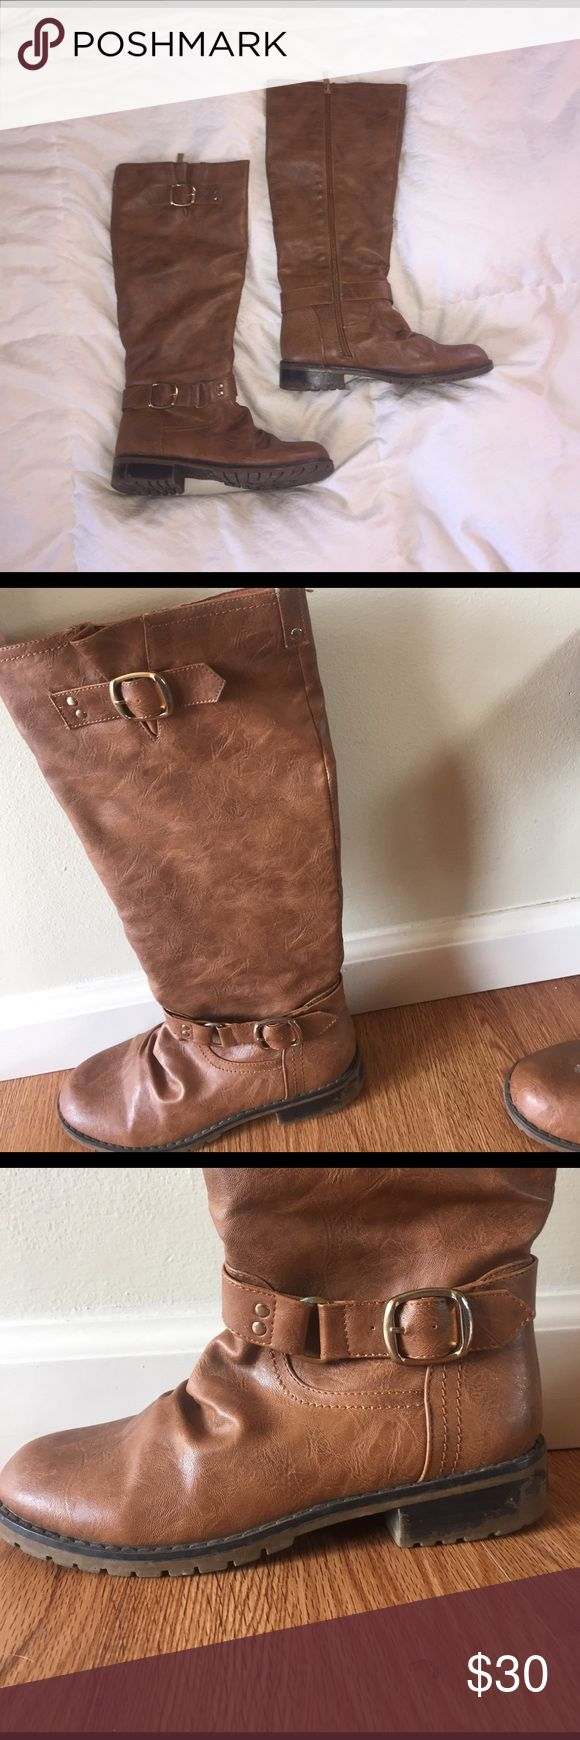 Riding boots Bought at Apricot Lane boutique. Moderately worn, open to offers! Shoes Heeled Boots